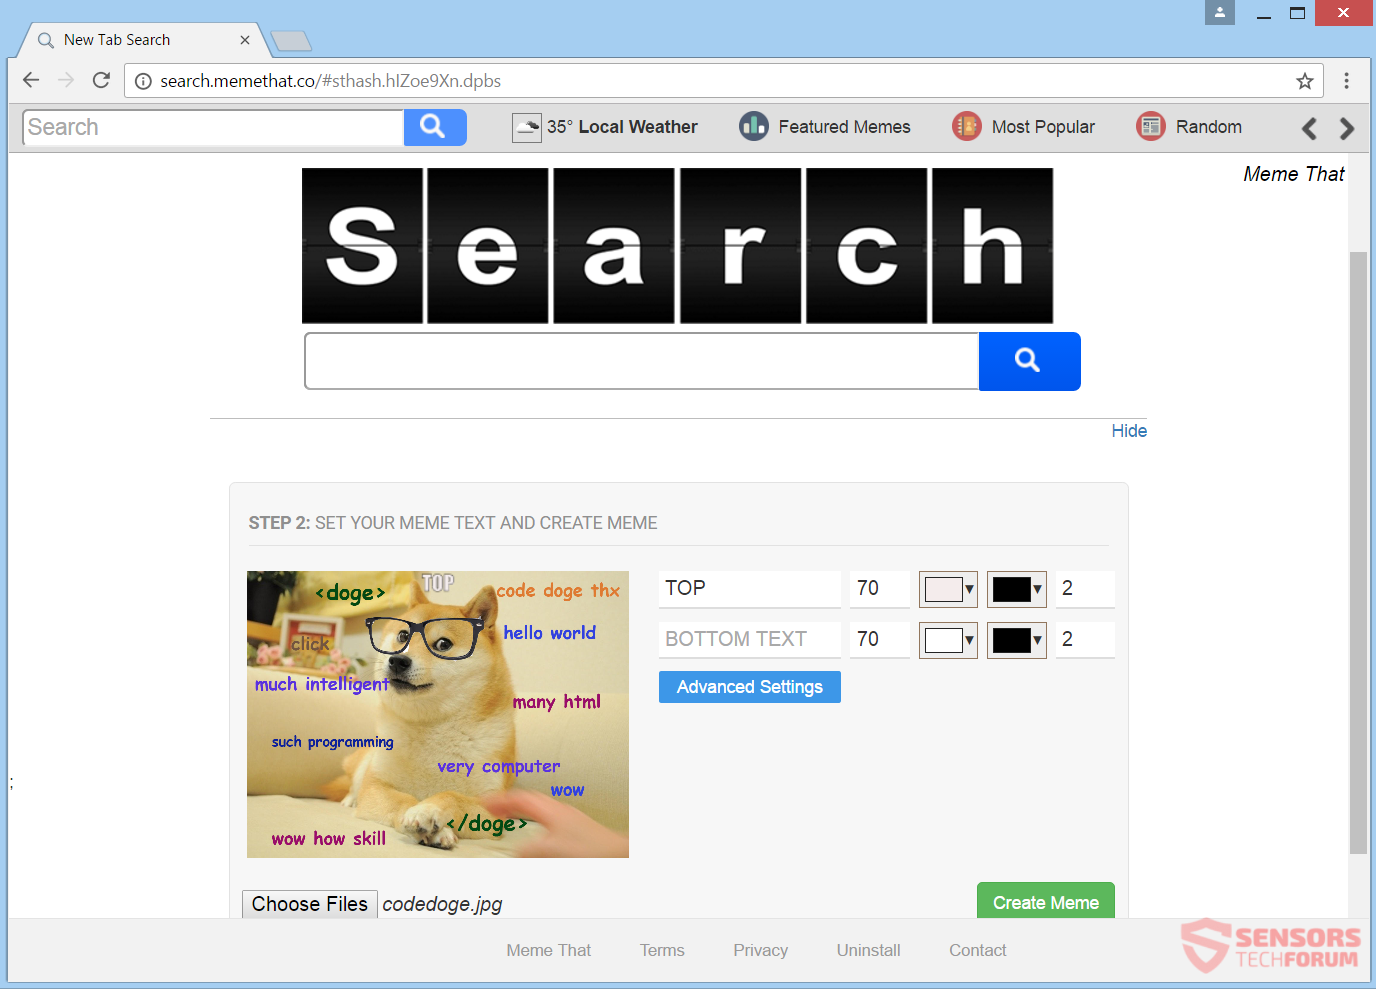 stf-search-memethat-co-meme-that-browser-hijacker-redirect-main-site-page